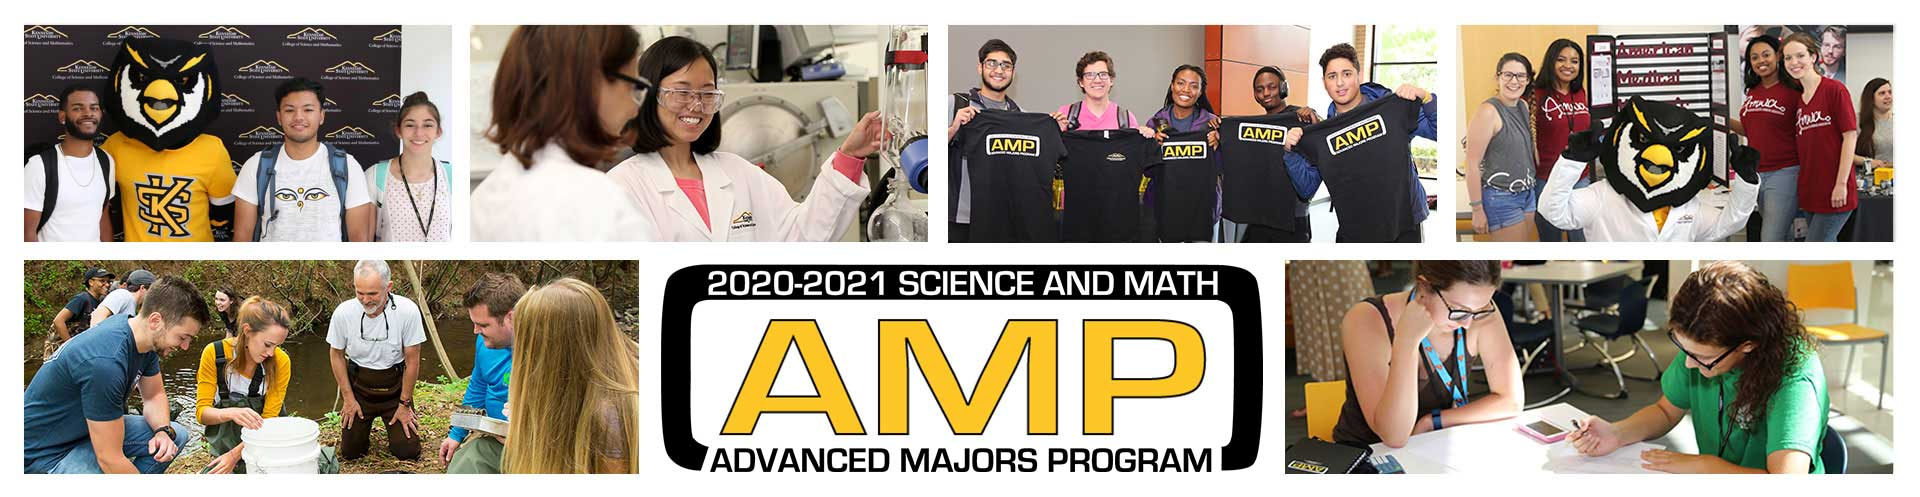 Photo collage of students in the Advanced Majors Program 2020-2021